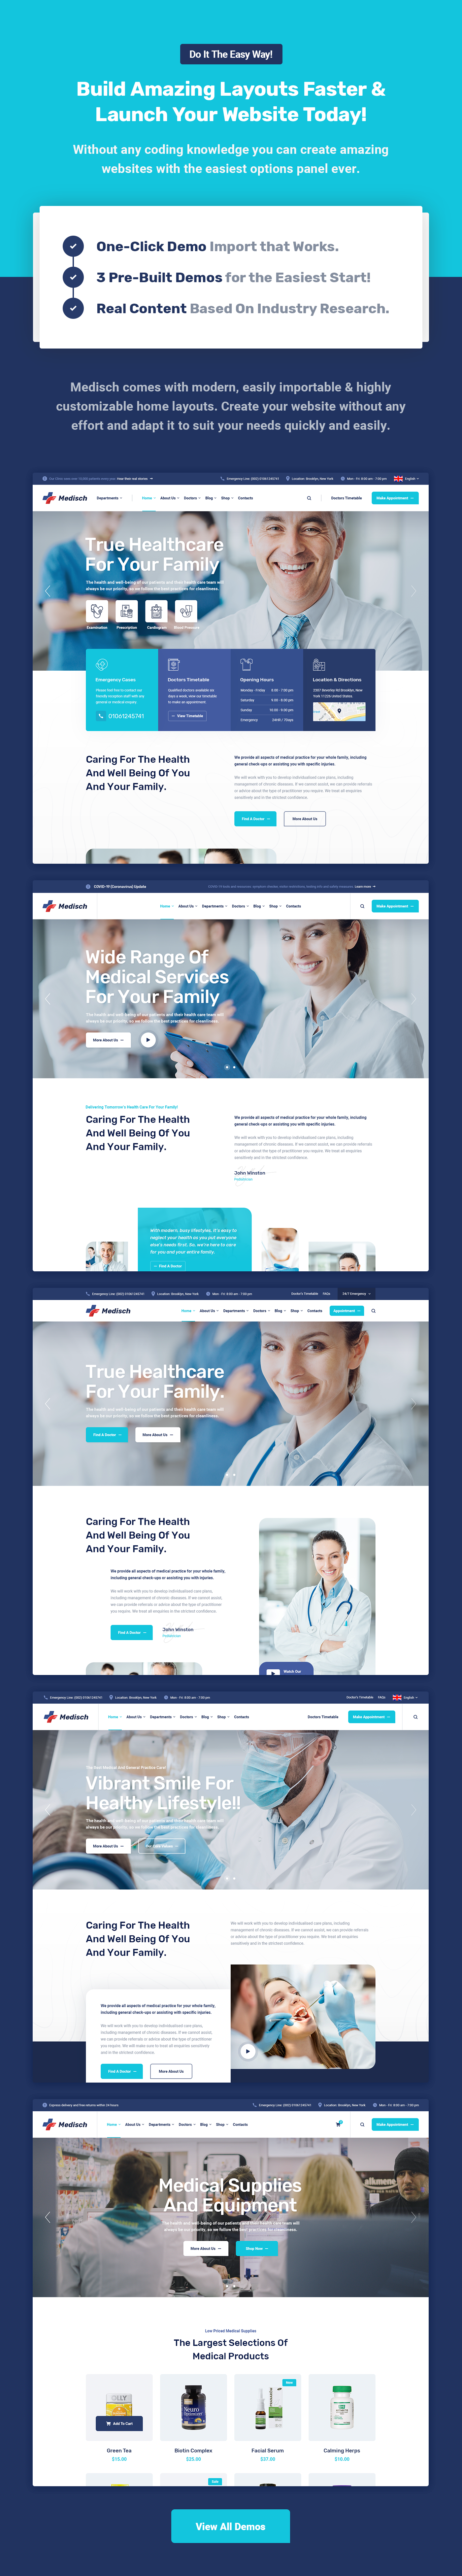 Medisch - Health & Medical WordPress Theme - 5